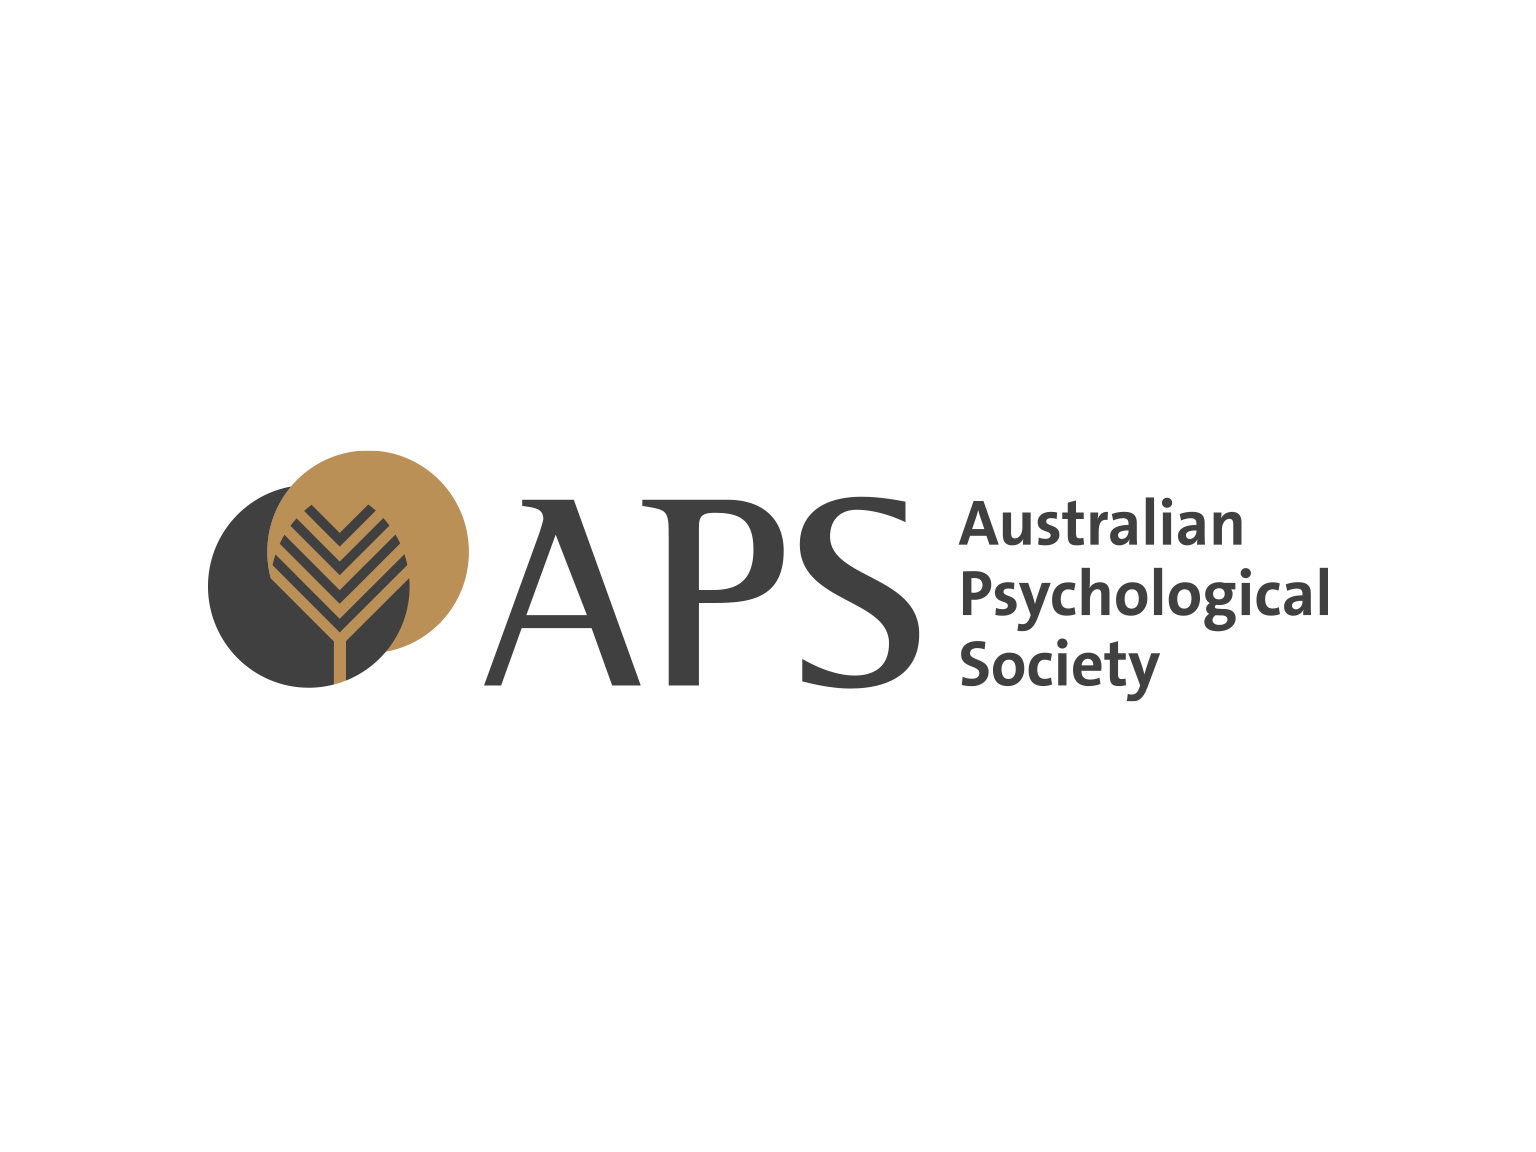 Logo for the Australian Psychological Society